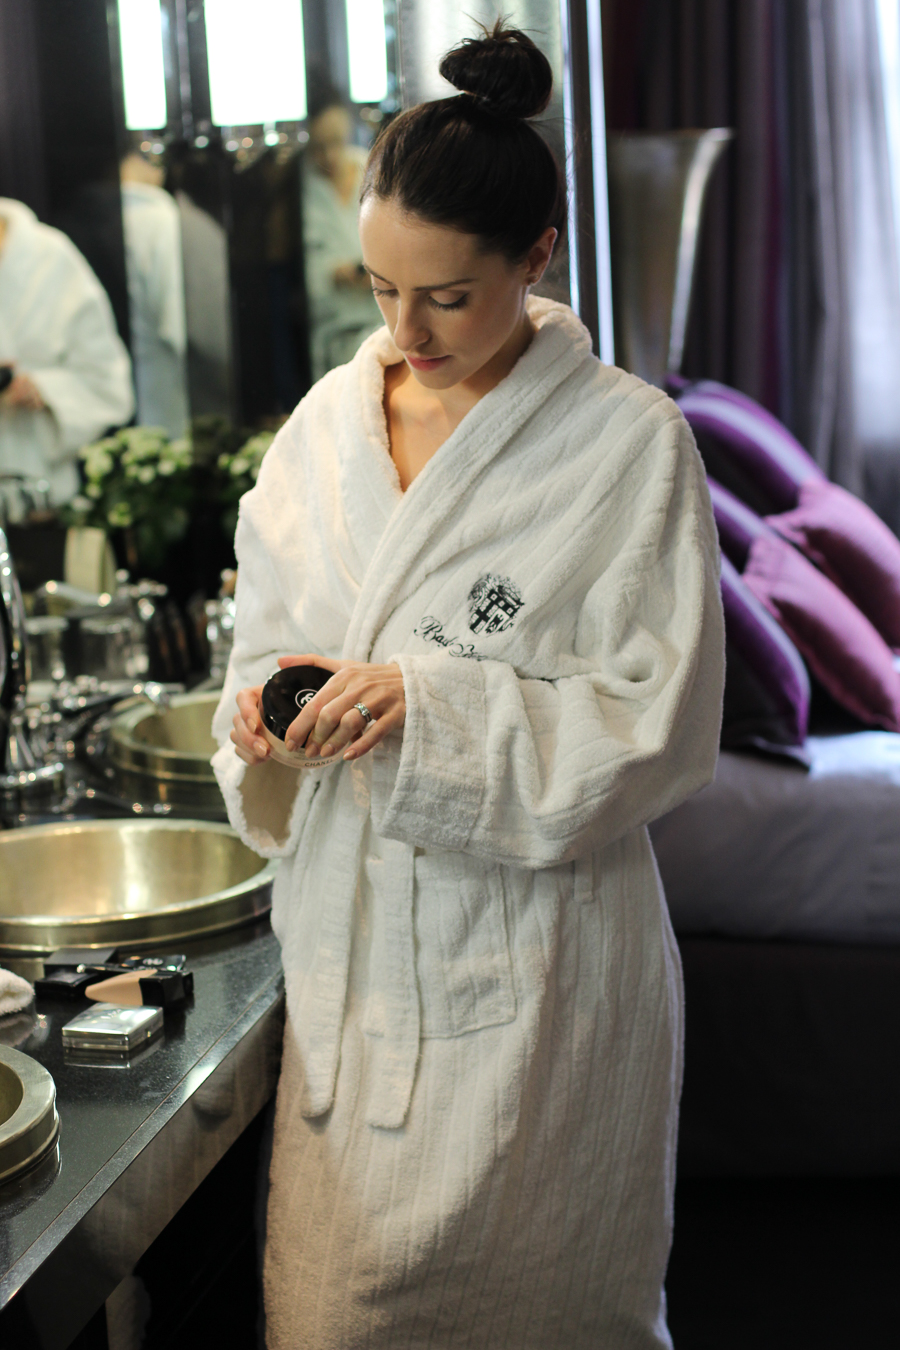 The Baglioni - C&C - Make-up Robe